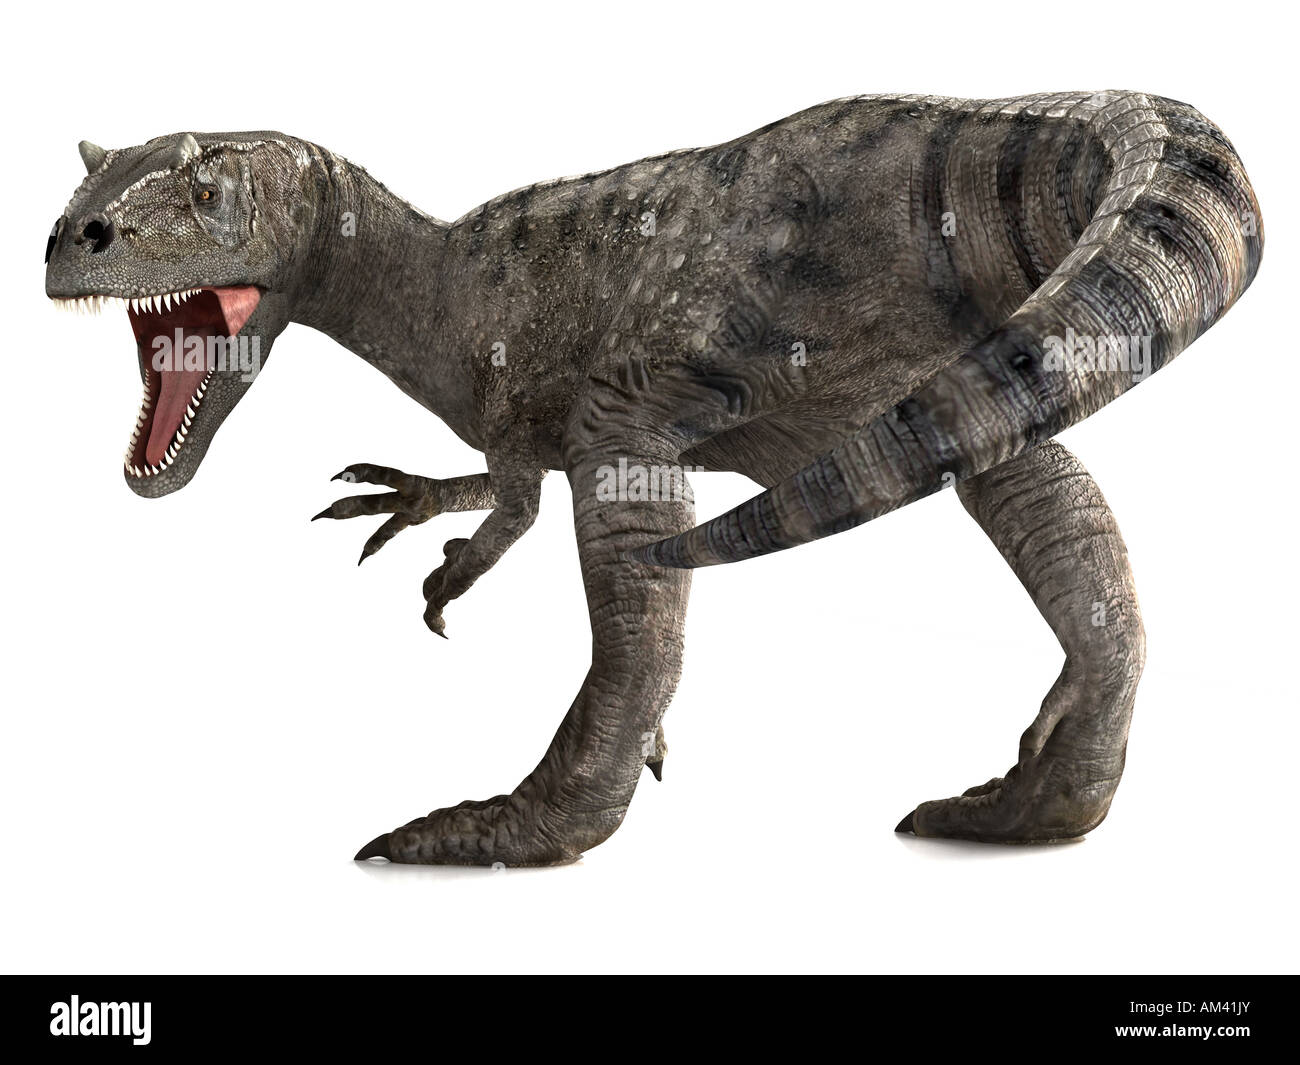 A giant dinosaur called an Allosaurus gives a roar before a violent attack - Stock Image